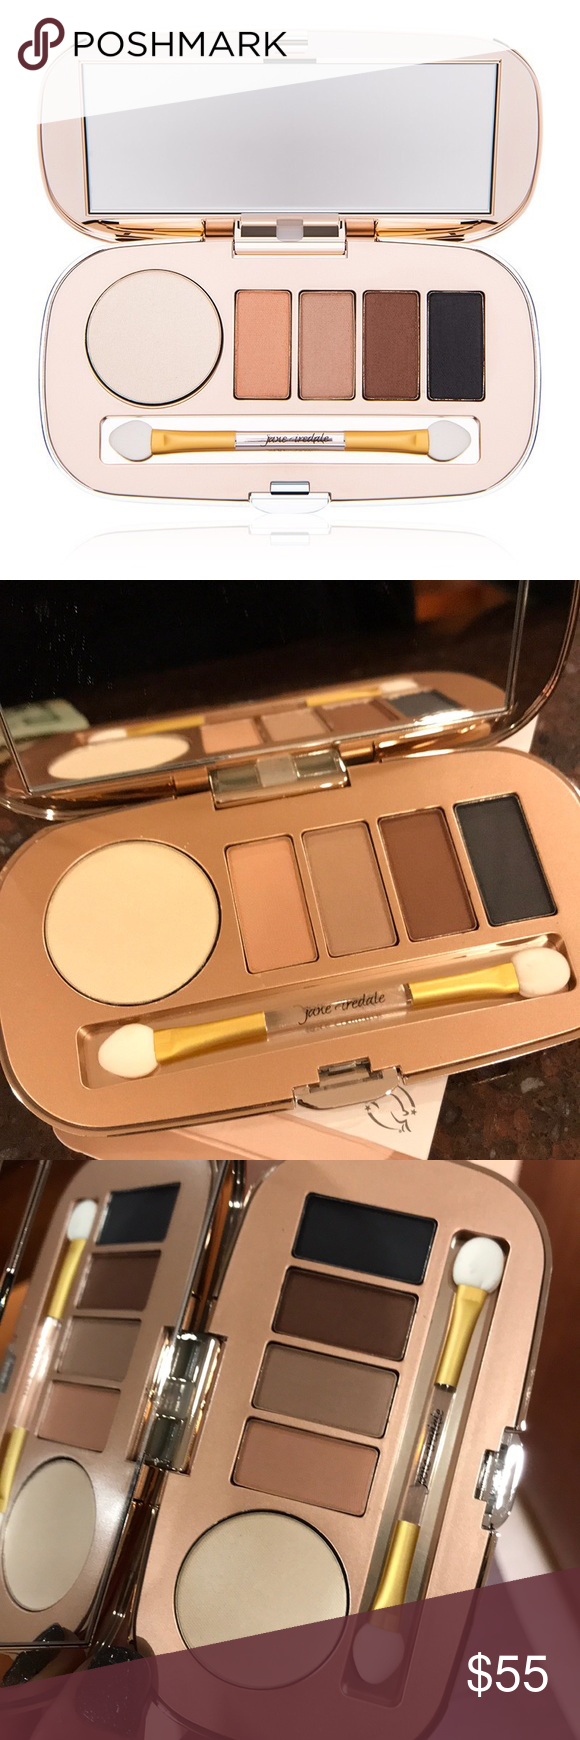 Daytime eyeshadow kit Jane Iredale PRICE IS FIRM. 15 OFF